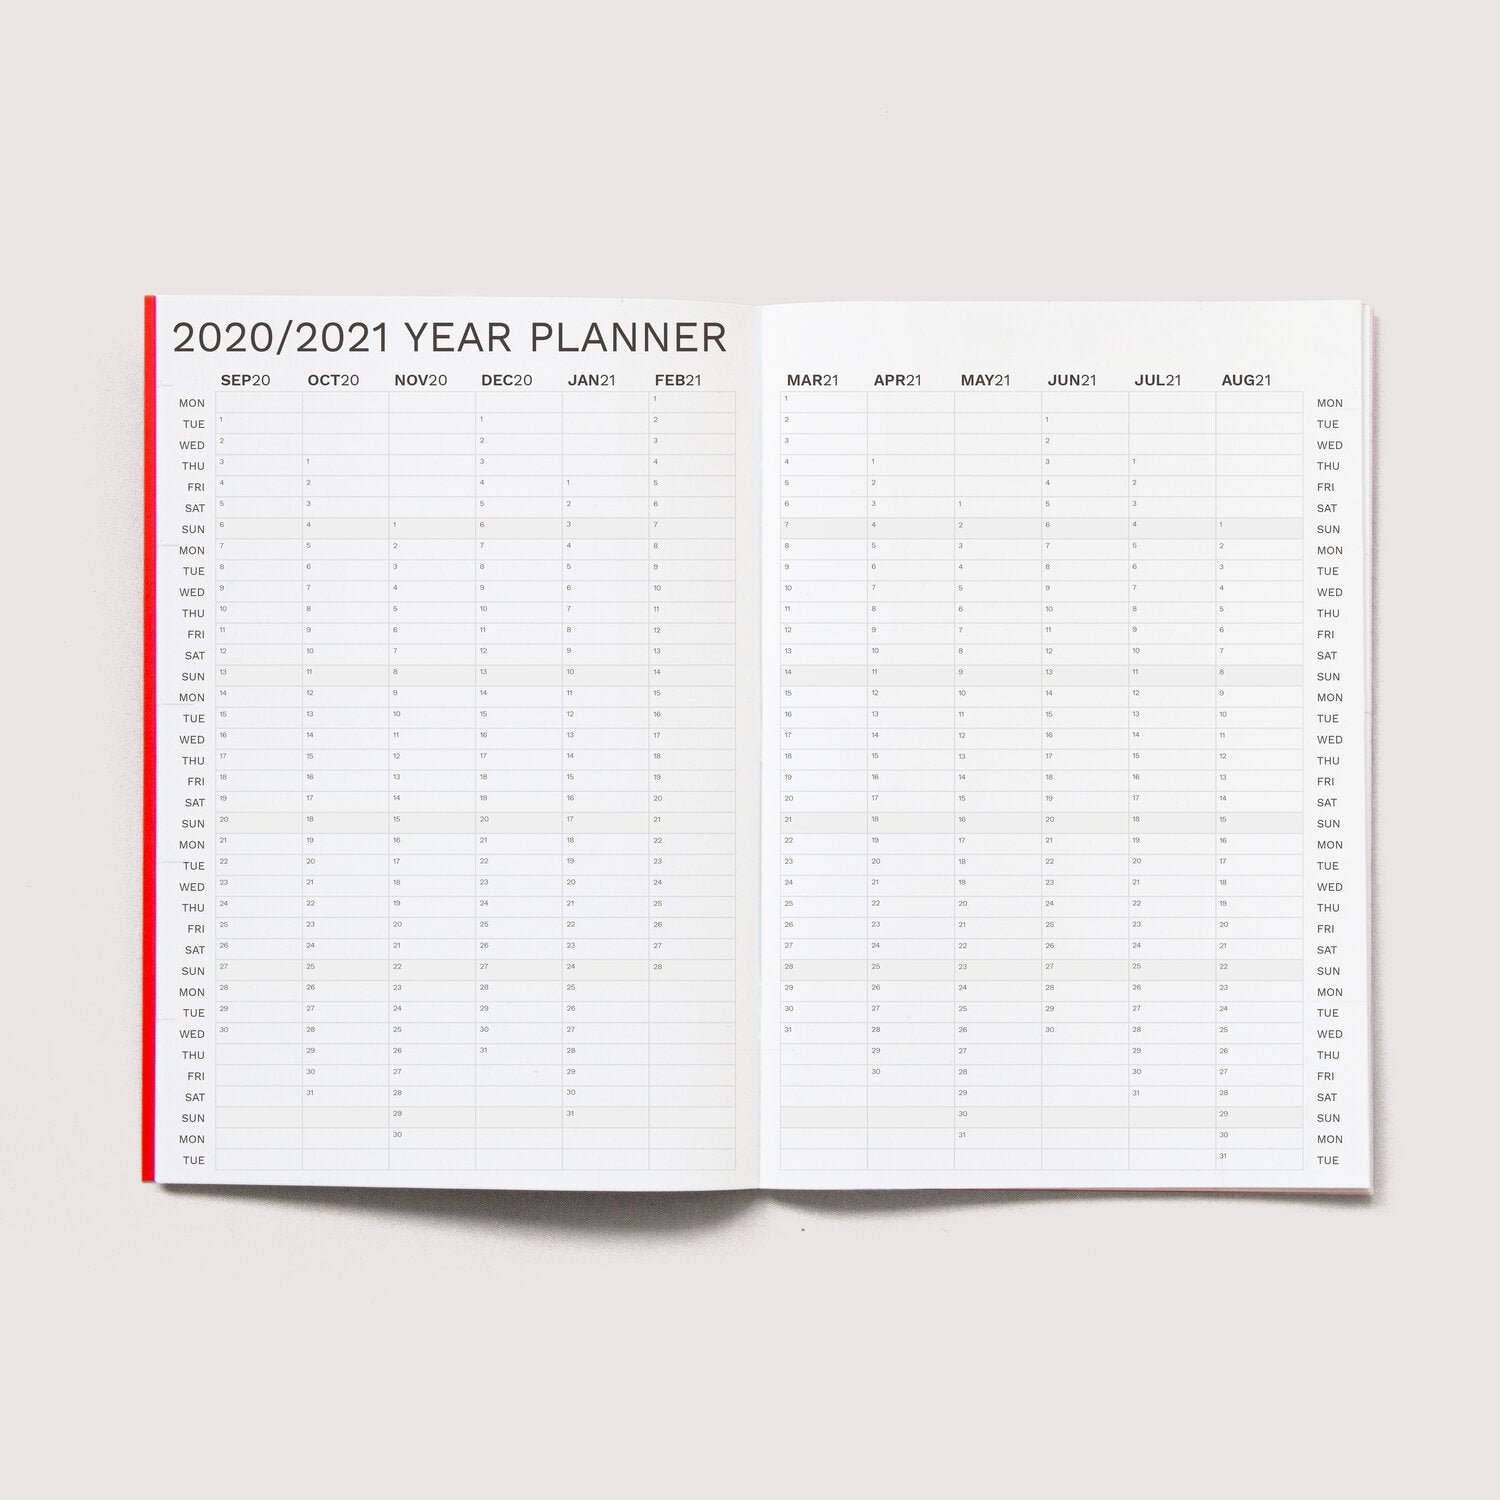 PLANNER Octagon 2020-2021 monthly planner big A4